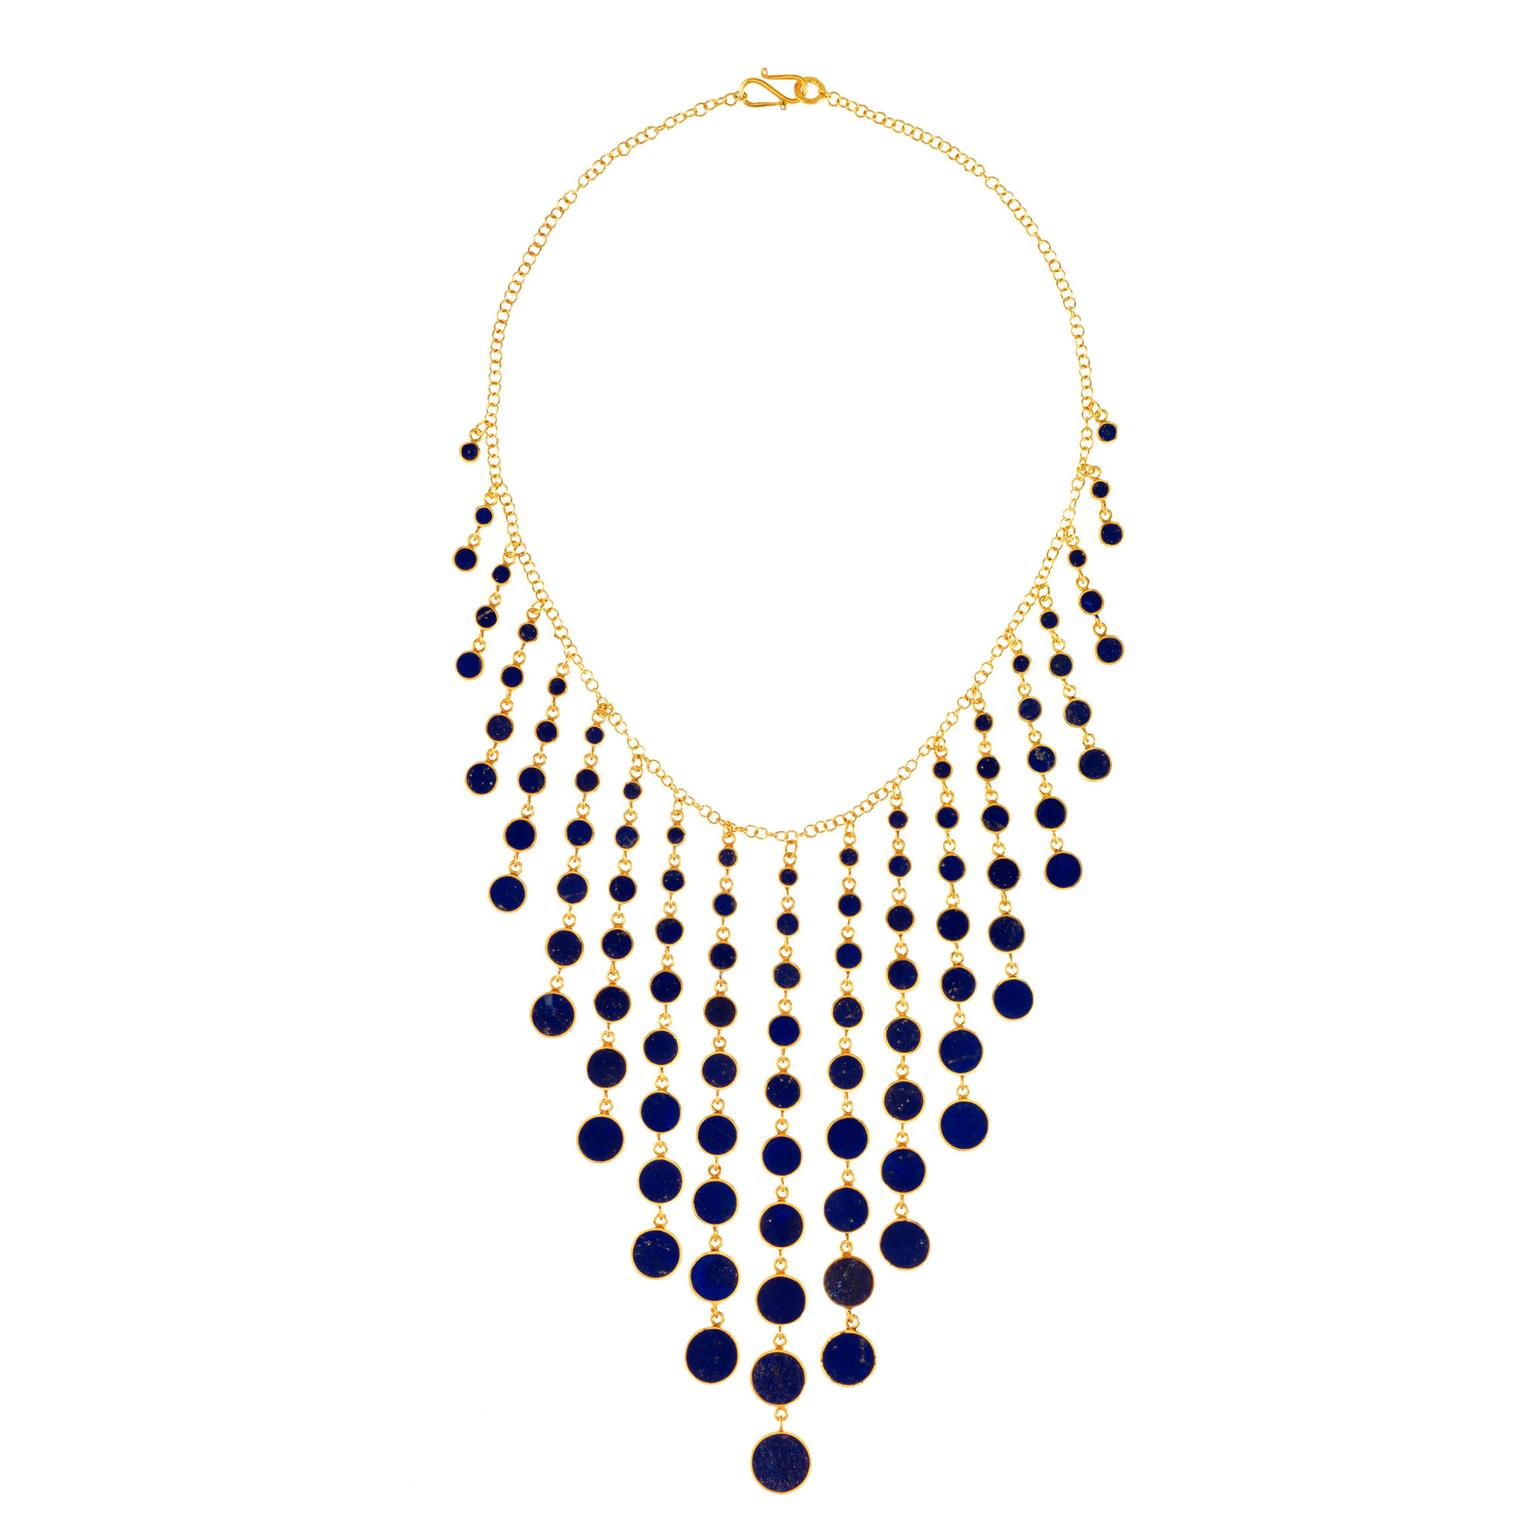 Pippa Small gold-plated silver and lapis lazuli necklace